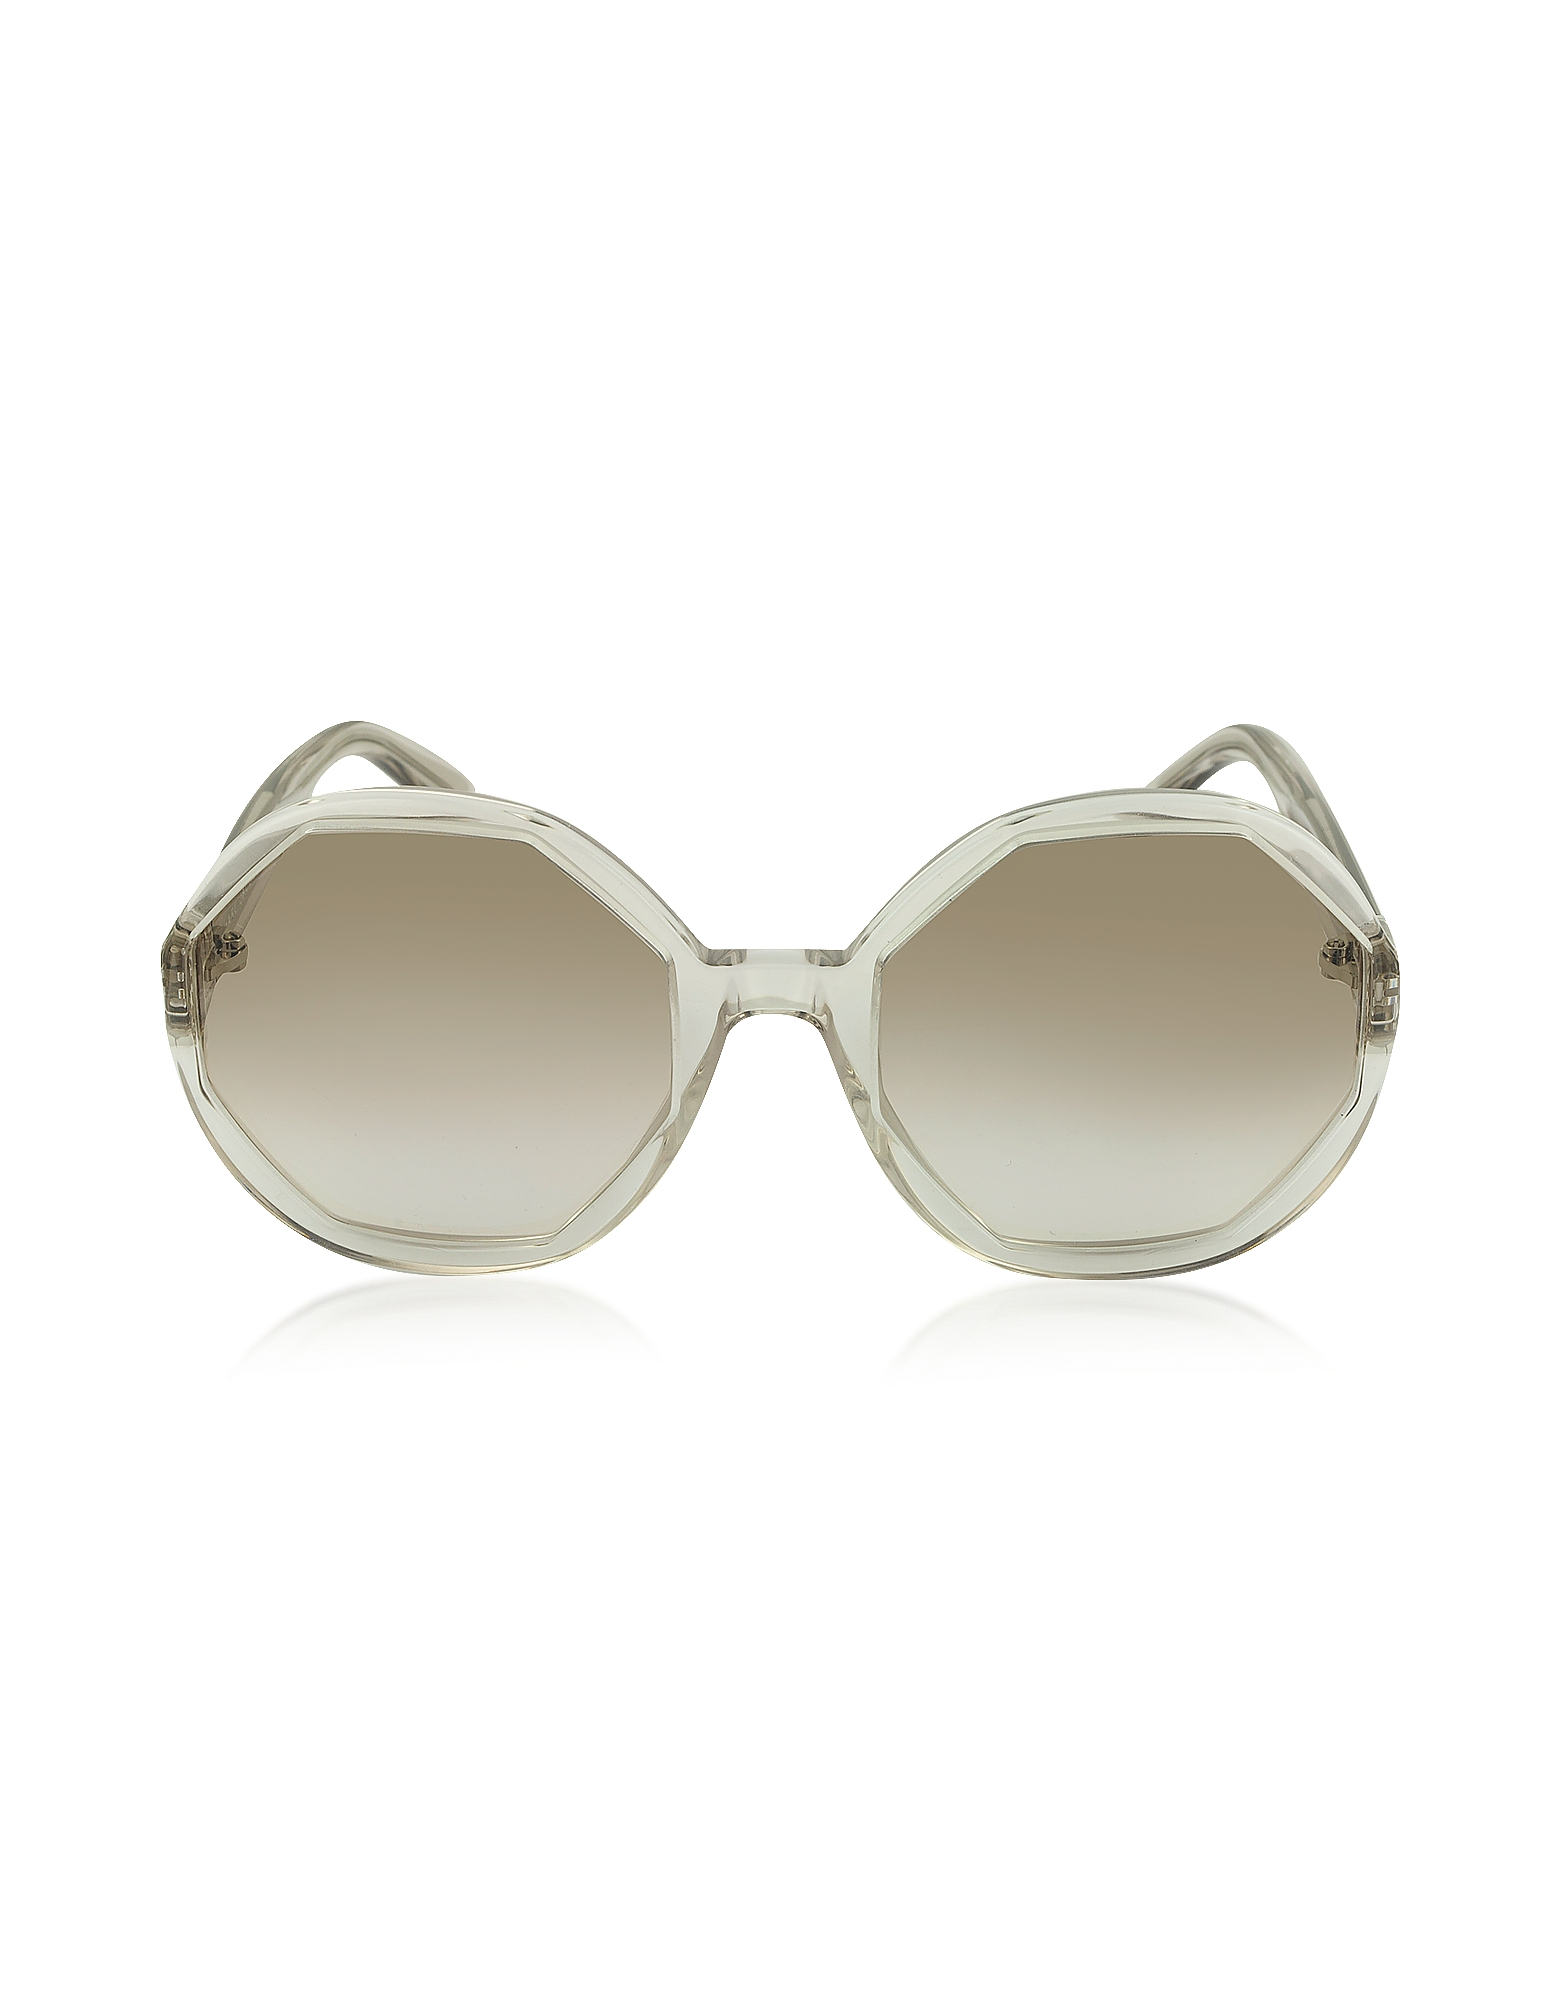 Marc Jacobs Sunglasses, MJ 584/S Honey Octagon Women's Sunglasses